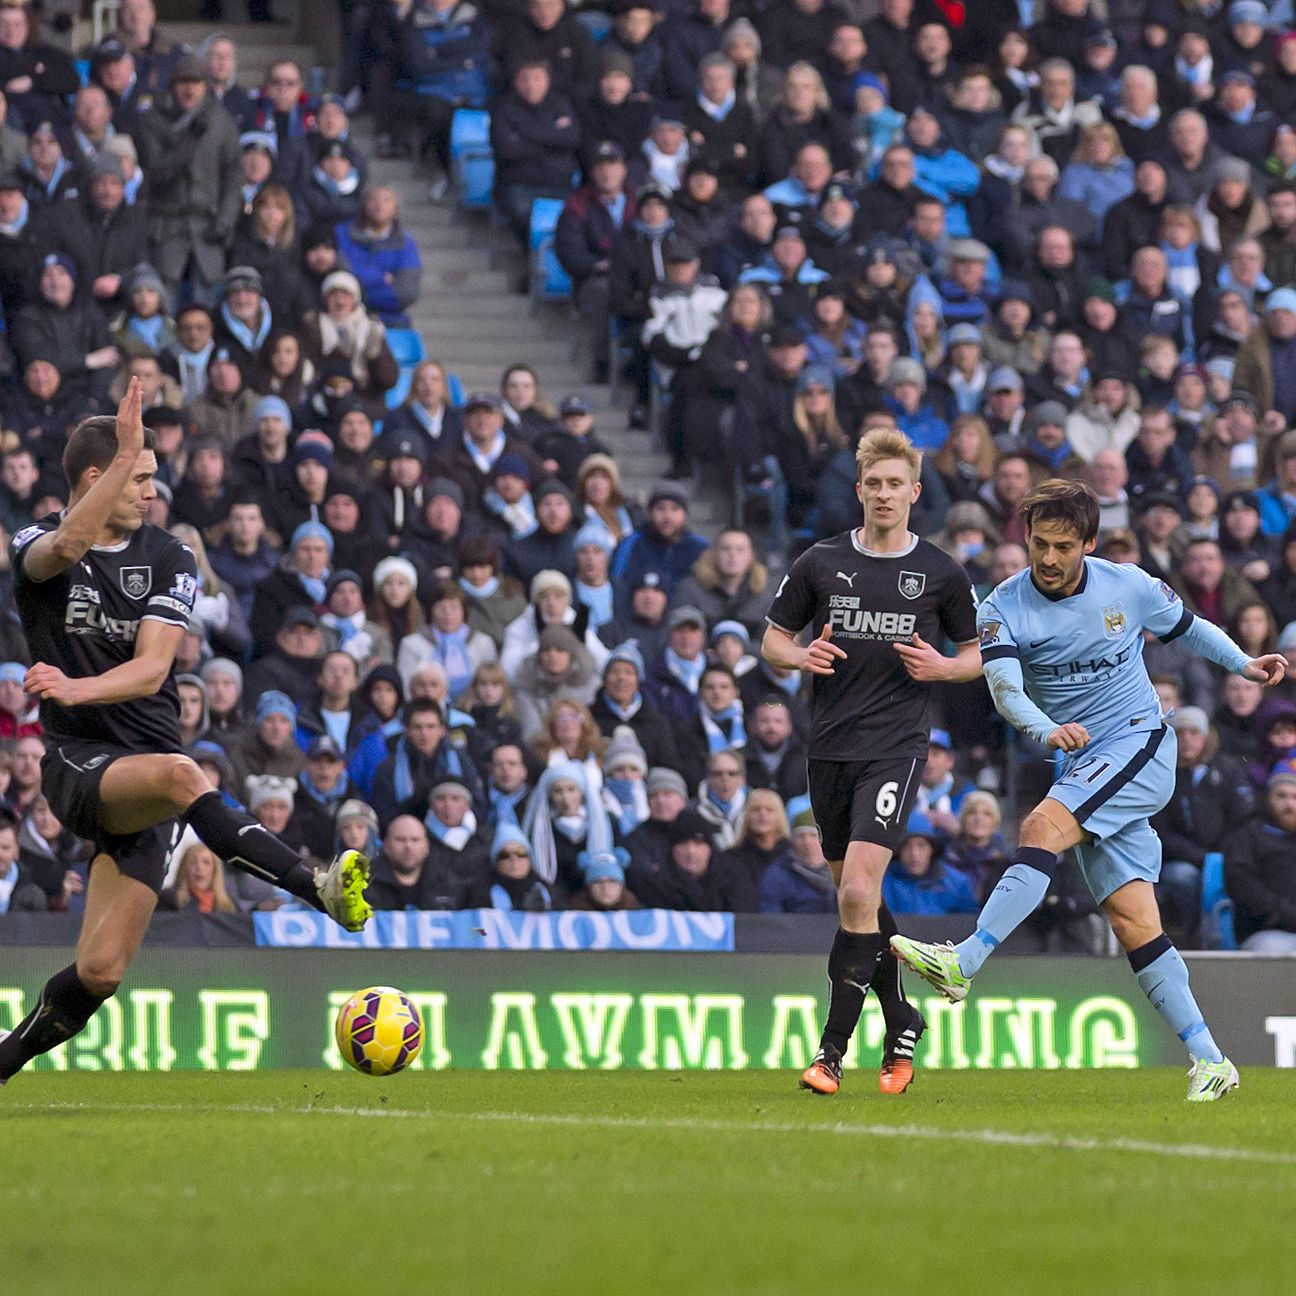 Manchester City's David Silva was once again on target for fantasy owners in Sunday's draw versus Burnley.